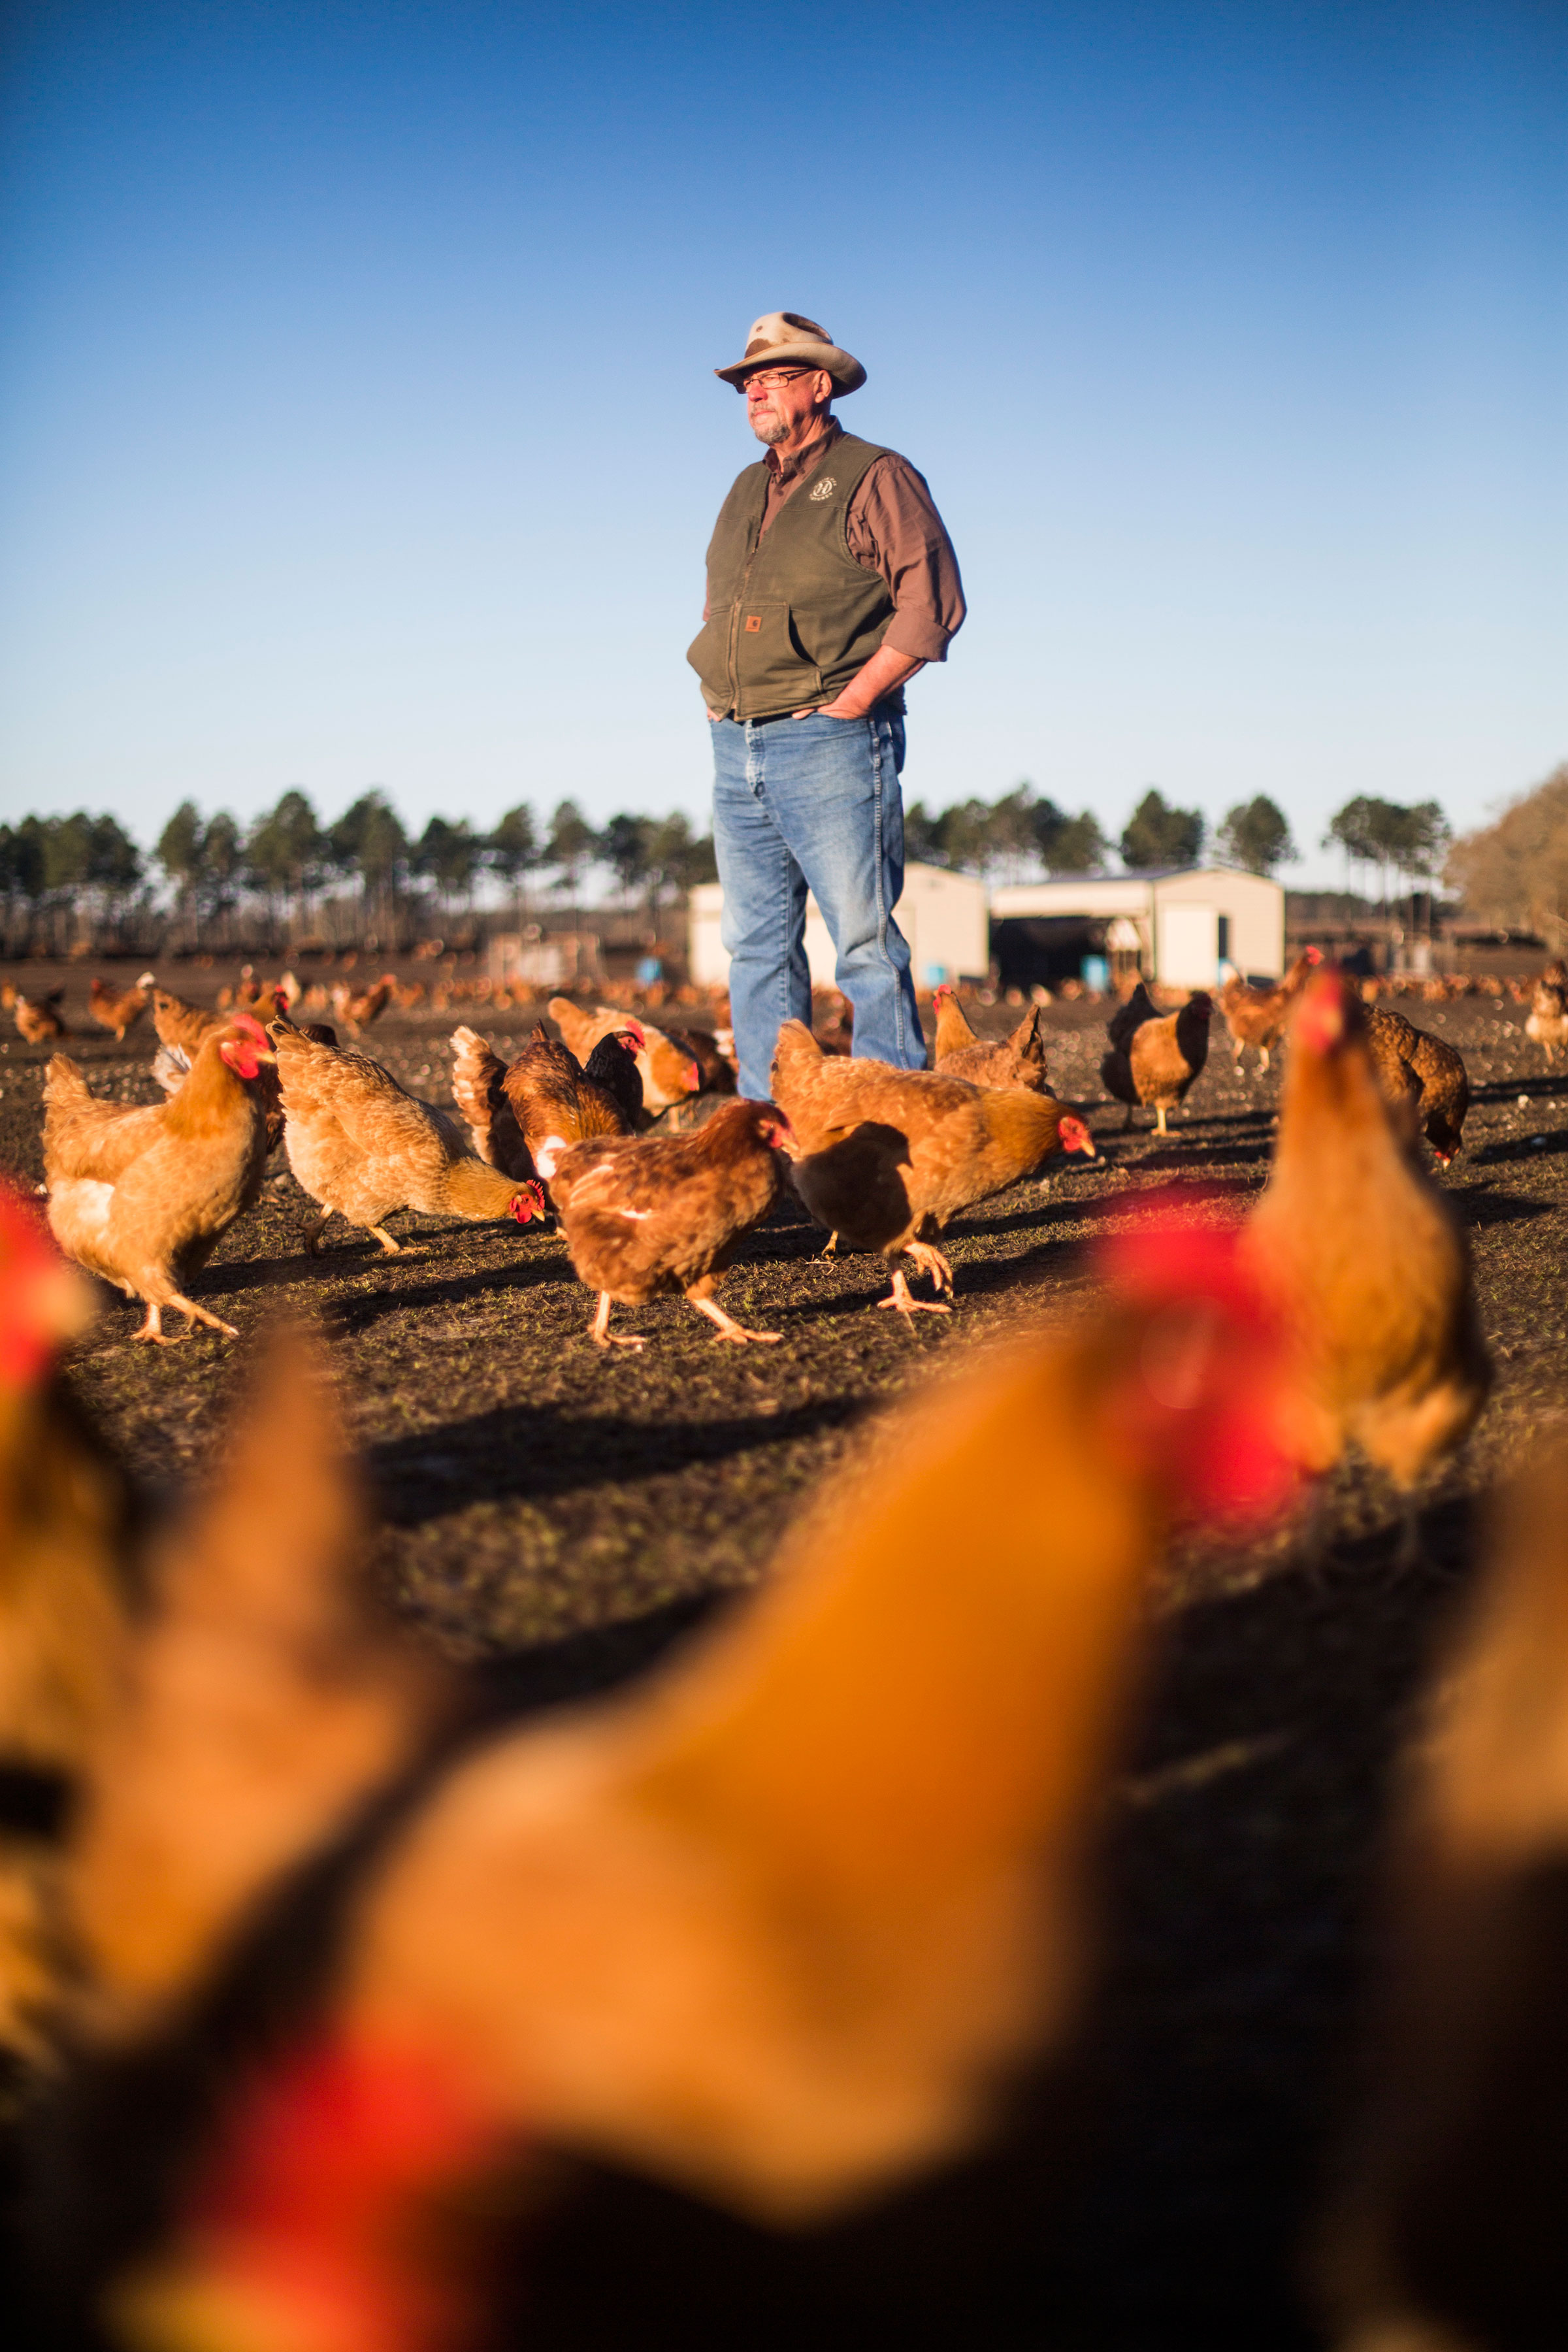 Six years ago, Will Harris decided to welcome chickens into his family's cattle business. A year later, the eagles began inviting themselves over. Bryan Meltz